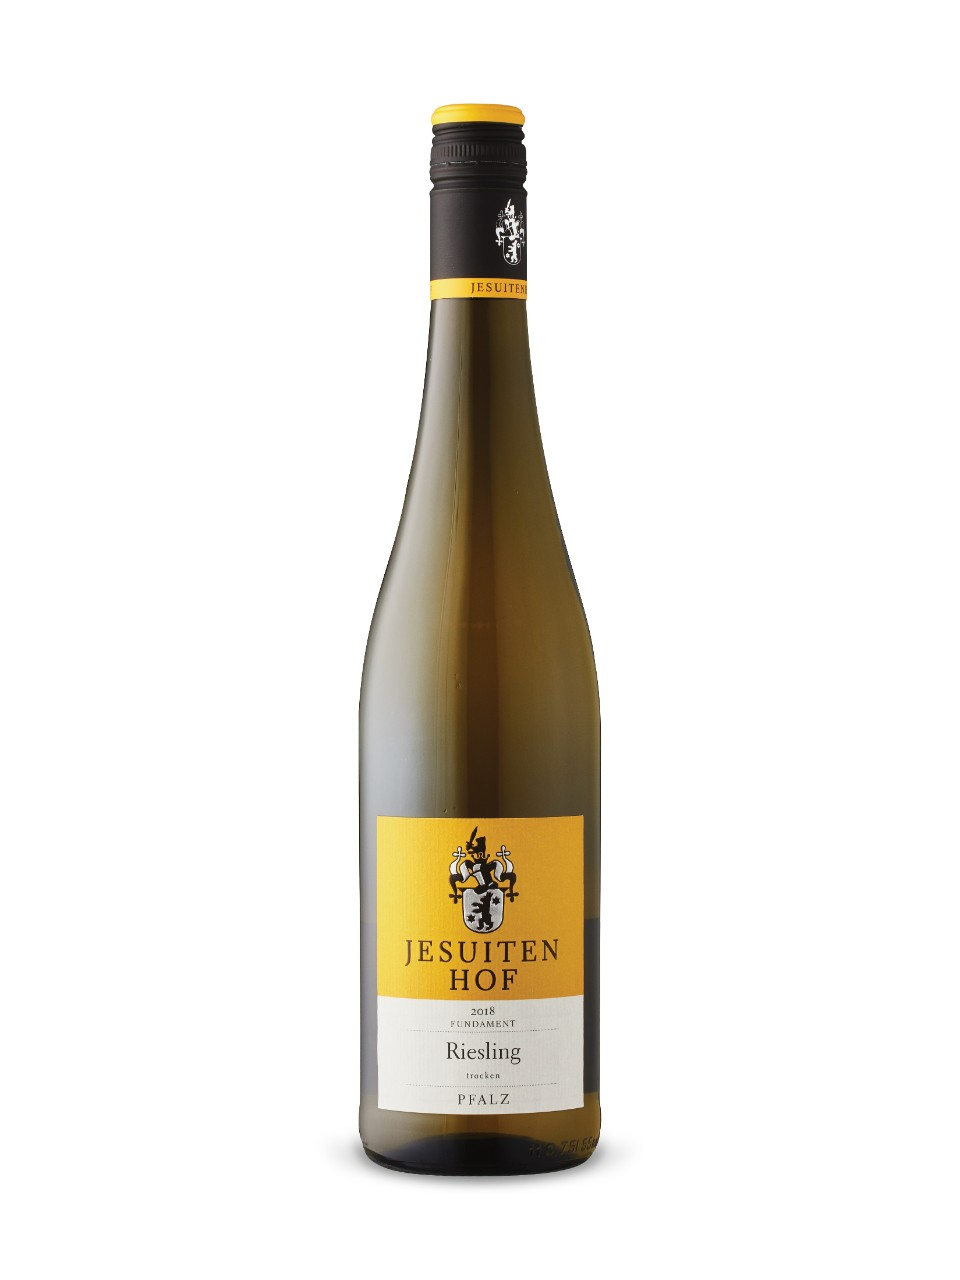 Jesuitenhof Fundament Riesling Trocken 2018 from LCBO